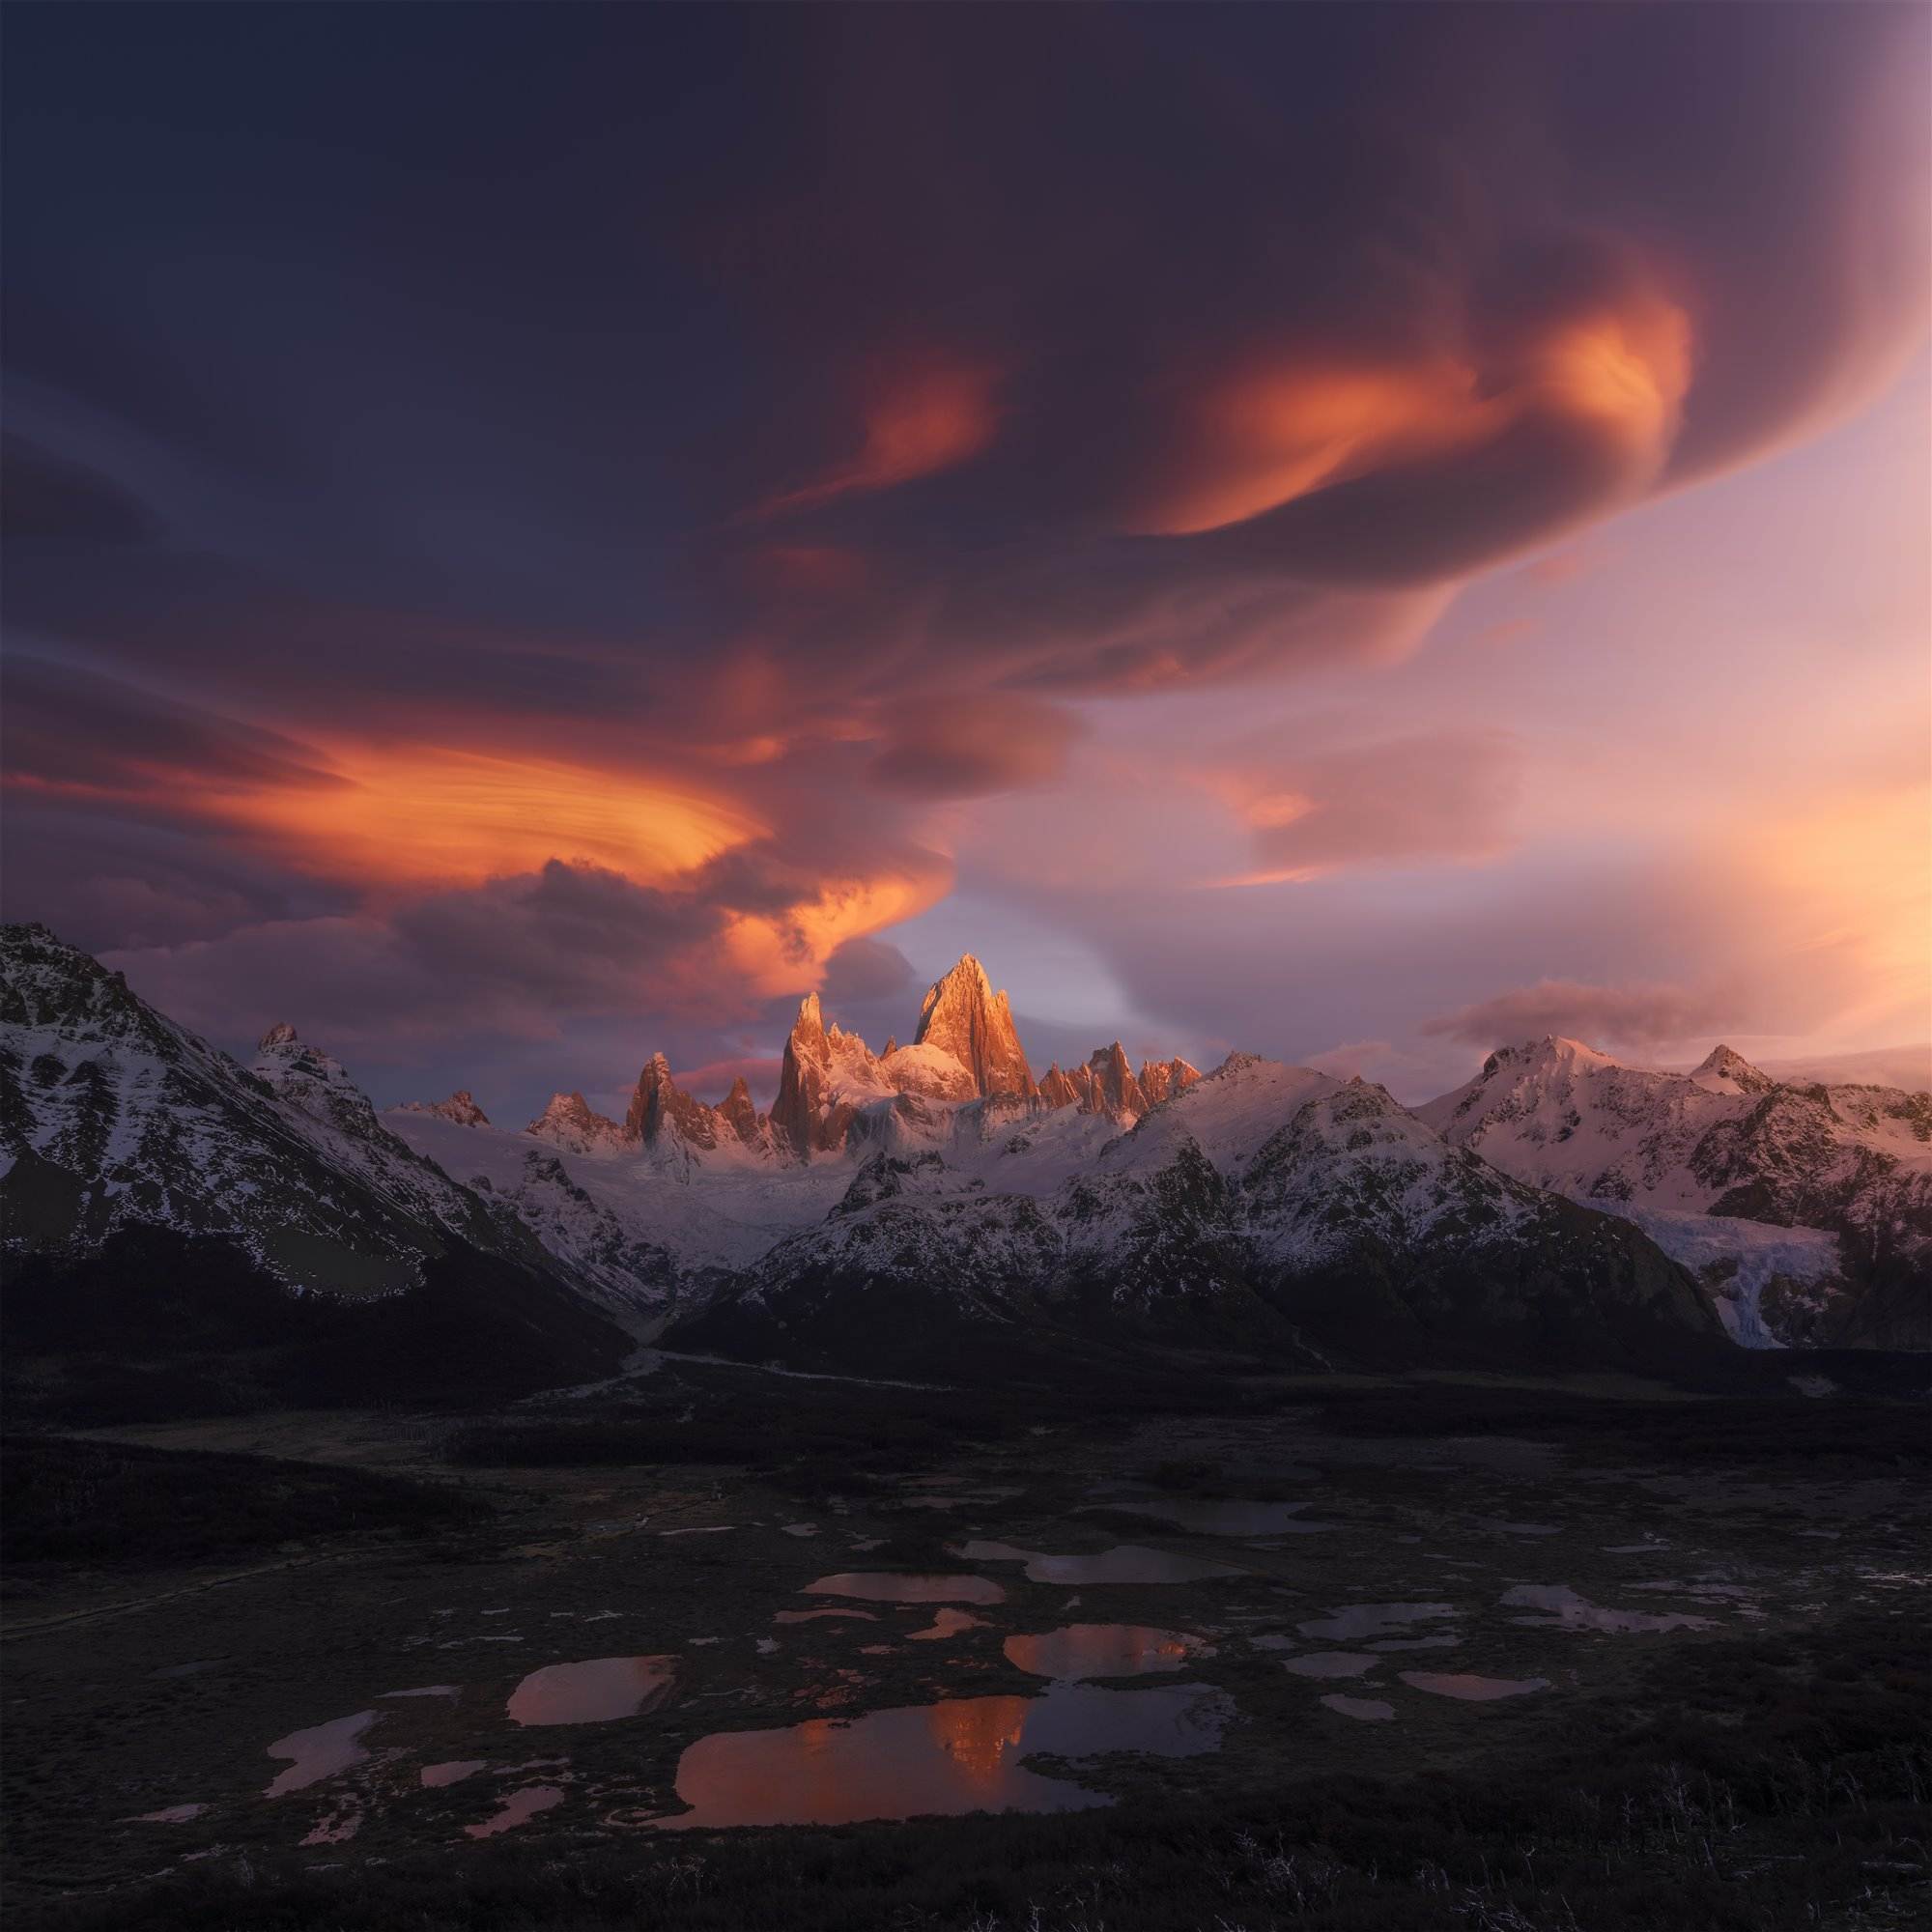 Clouds gather in South America - Fitzroy-Xiao Zhu. Fitzroy, Patagonia